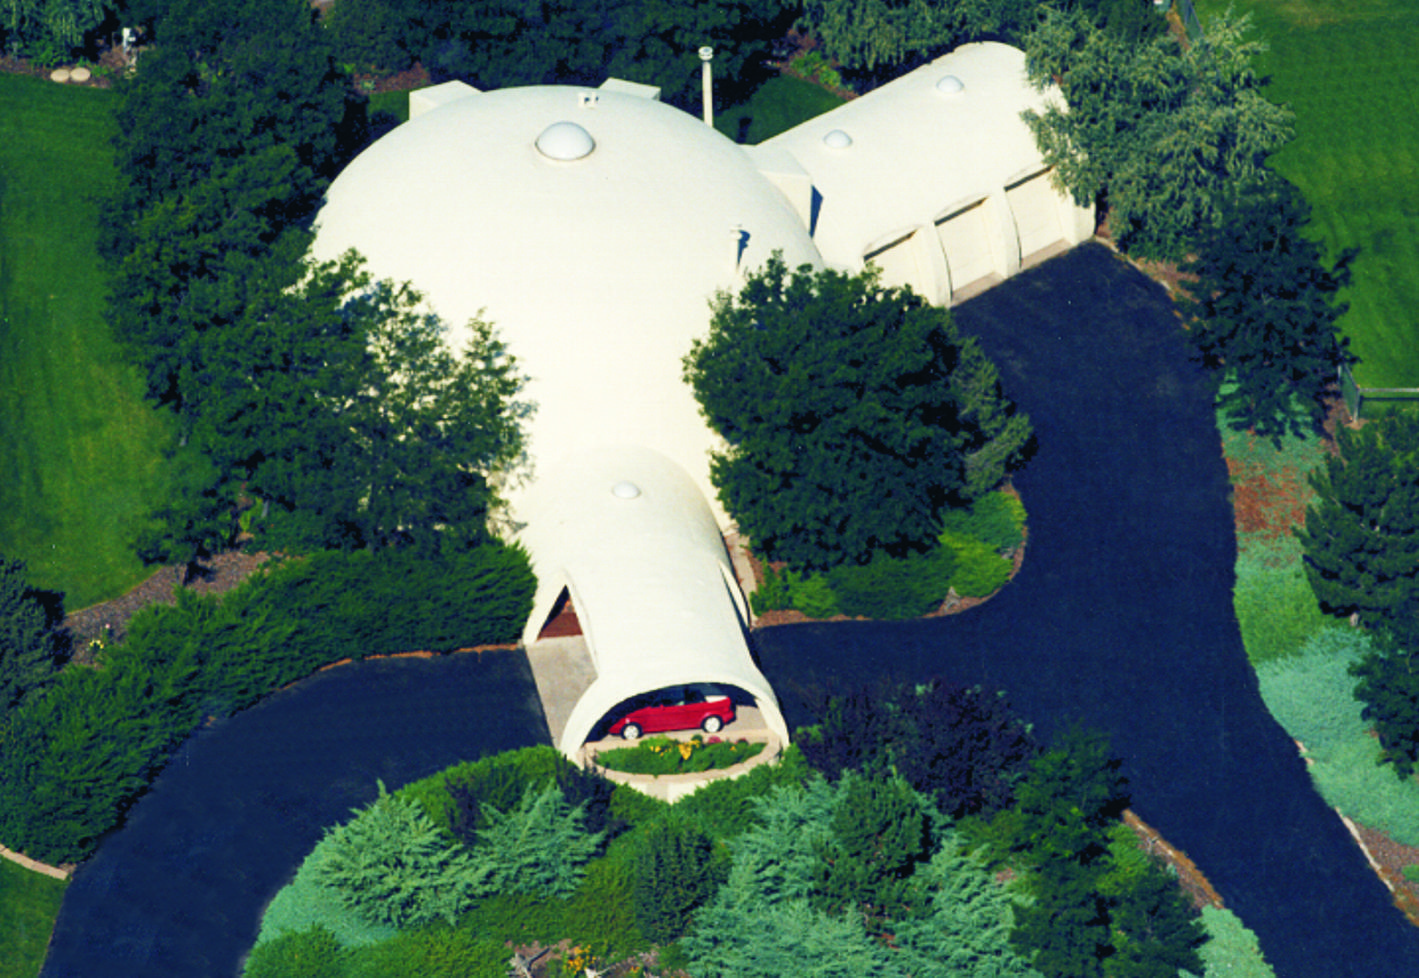 Aerial view of dome home